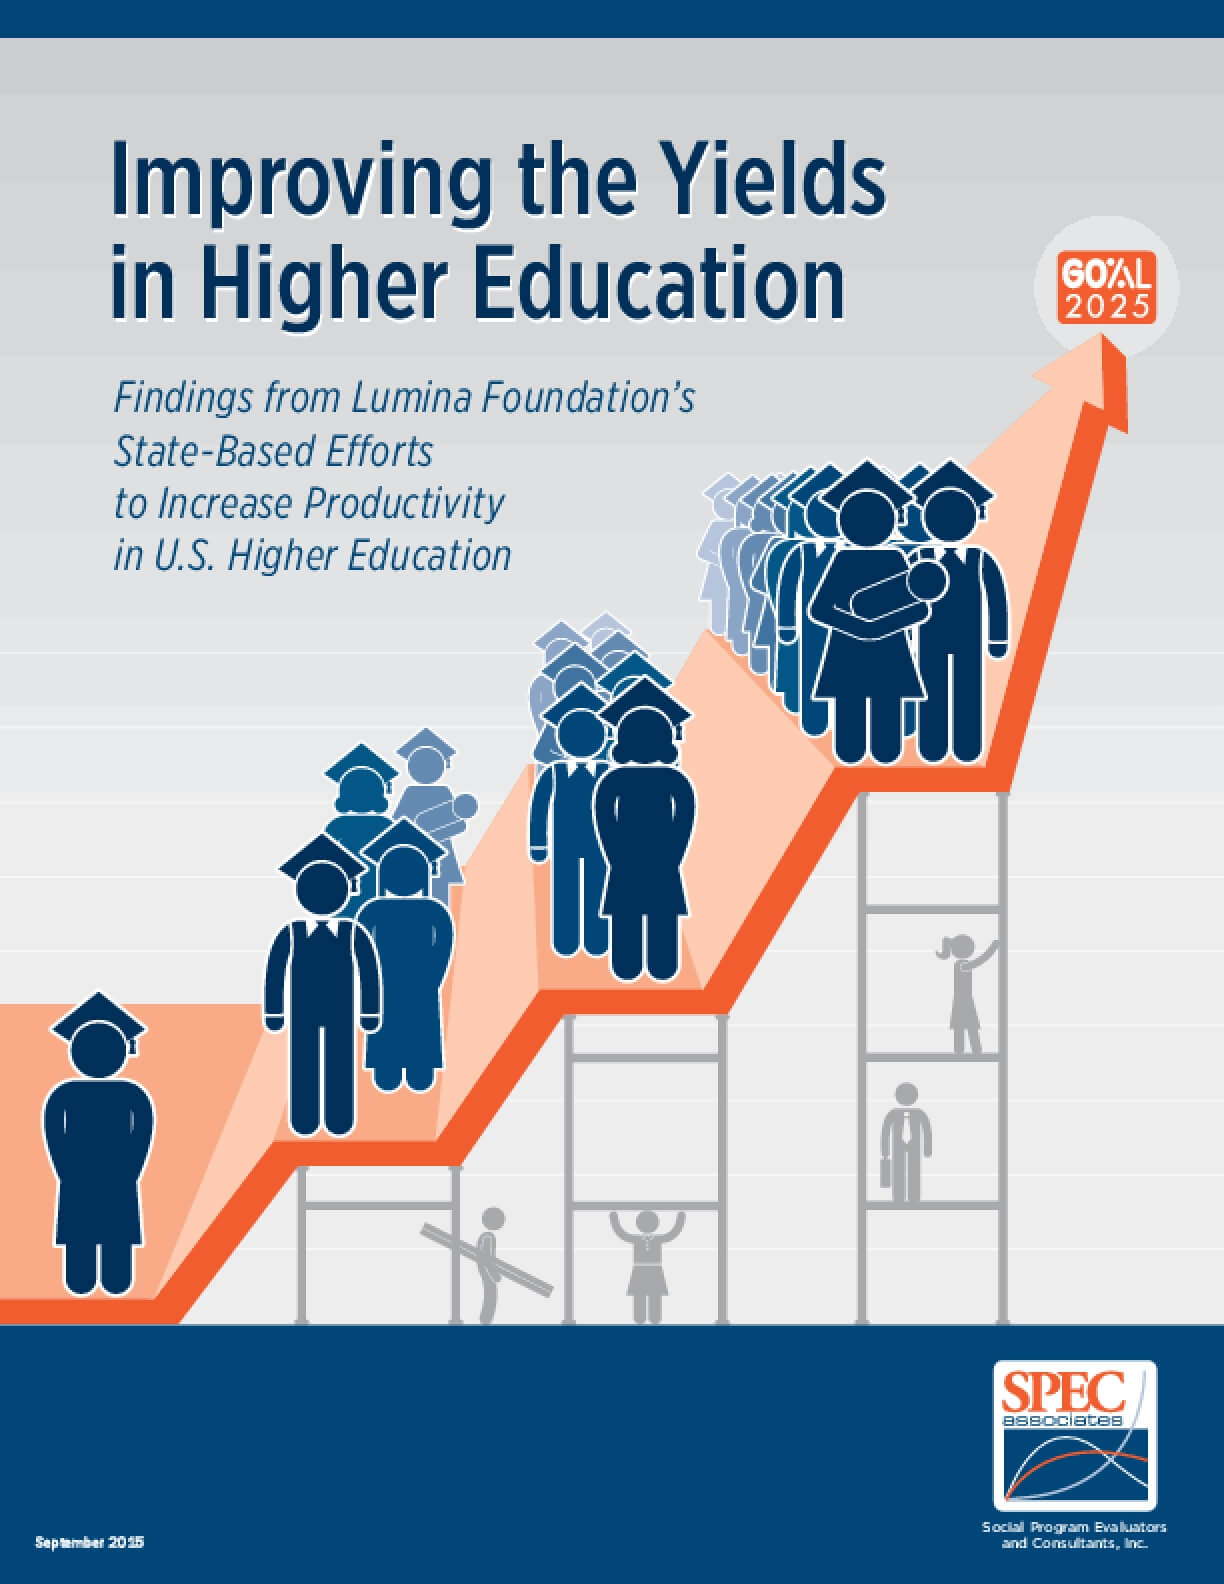 Improving the Yields in Higher Education: Findings from Lumina Foundation's State-Based Efforts to Increase Productivity in U.S. Higher Education